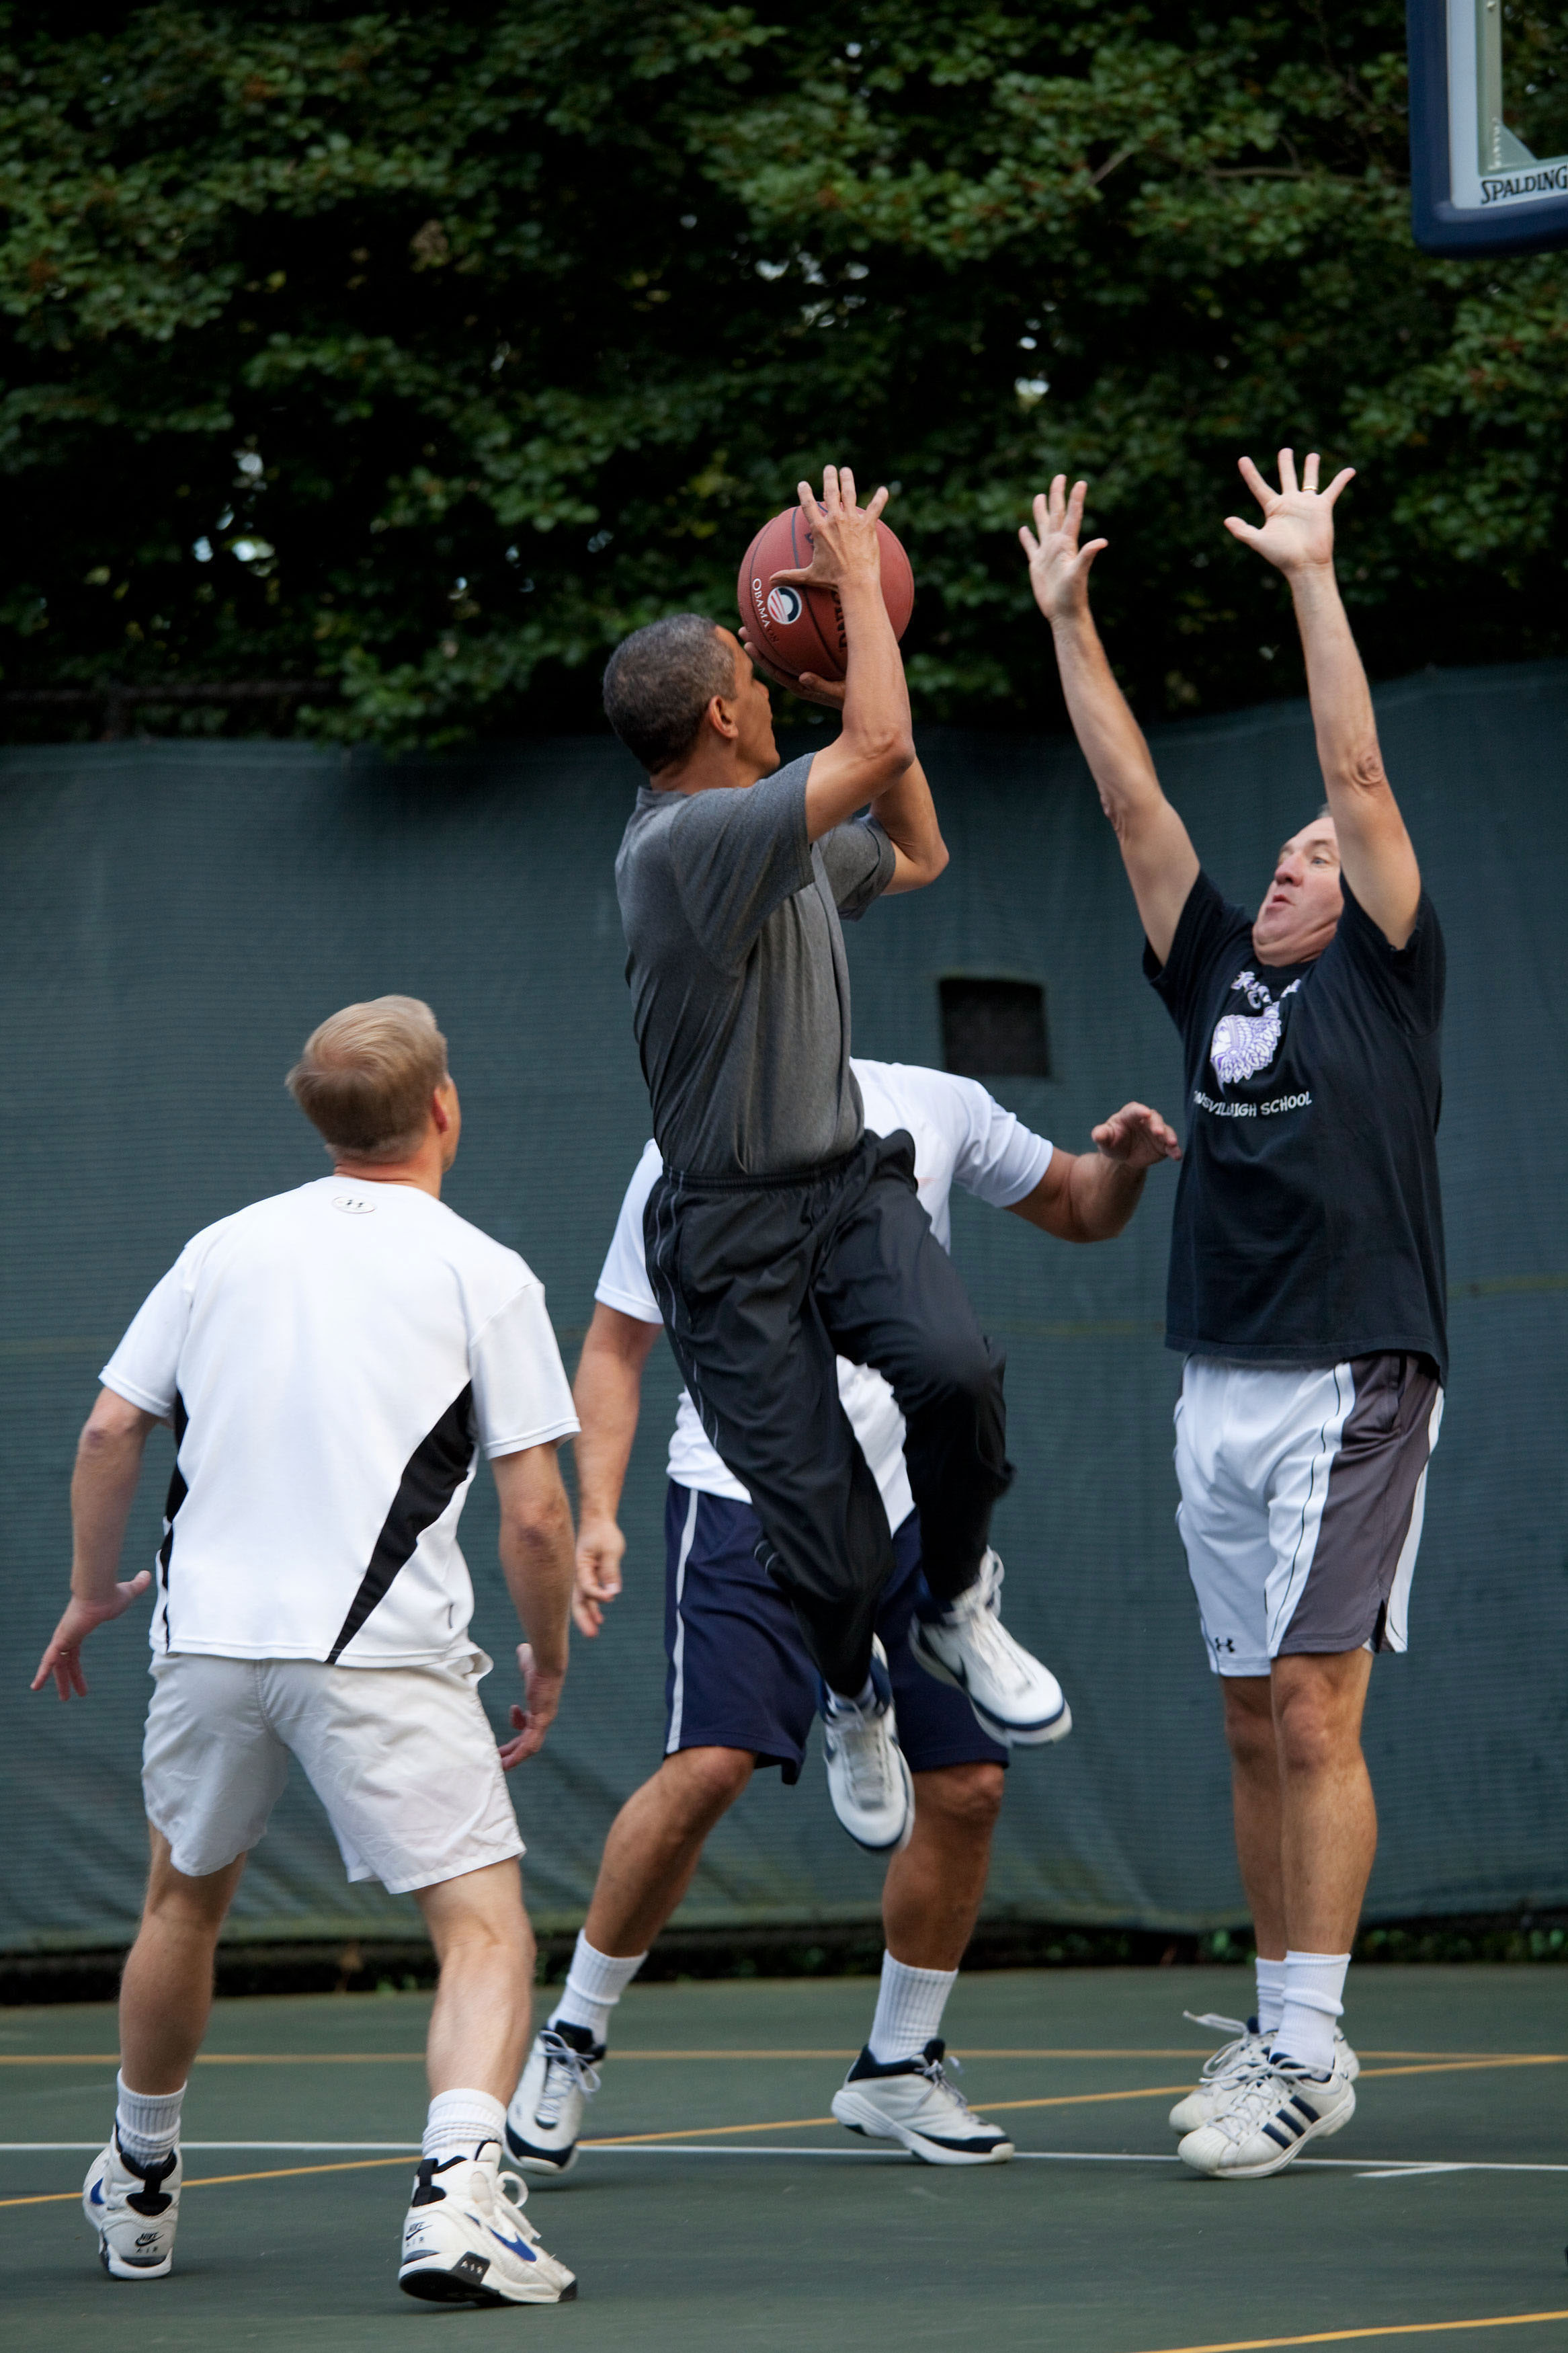 Obama about to take a shot while three other players look at him. One of those players is holding is arms up in an attempt to block Obama.